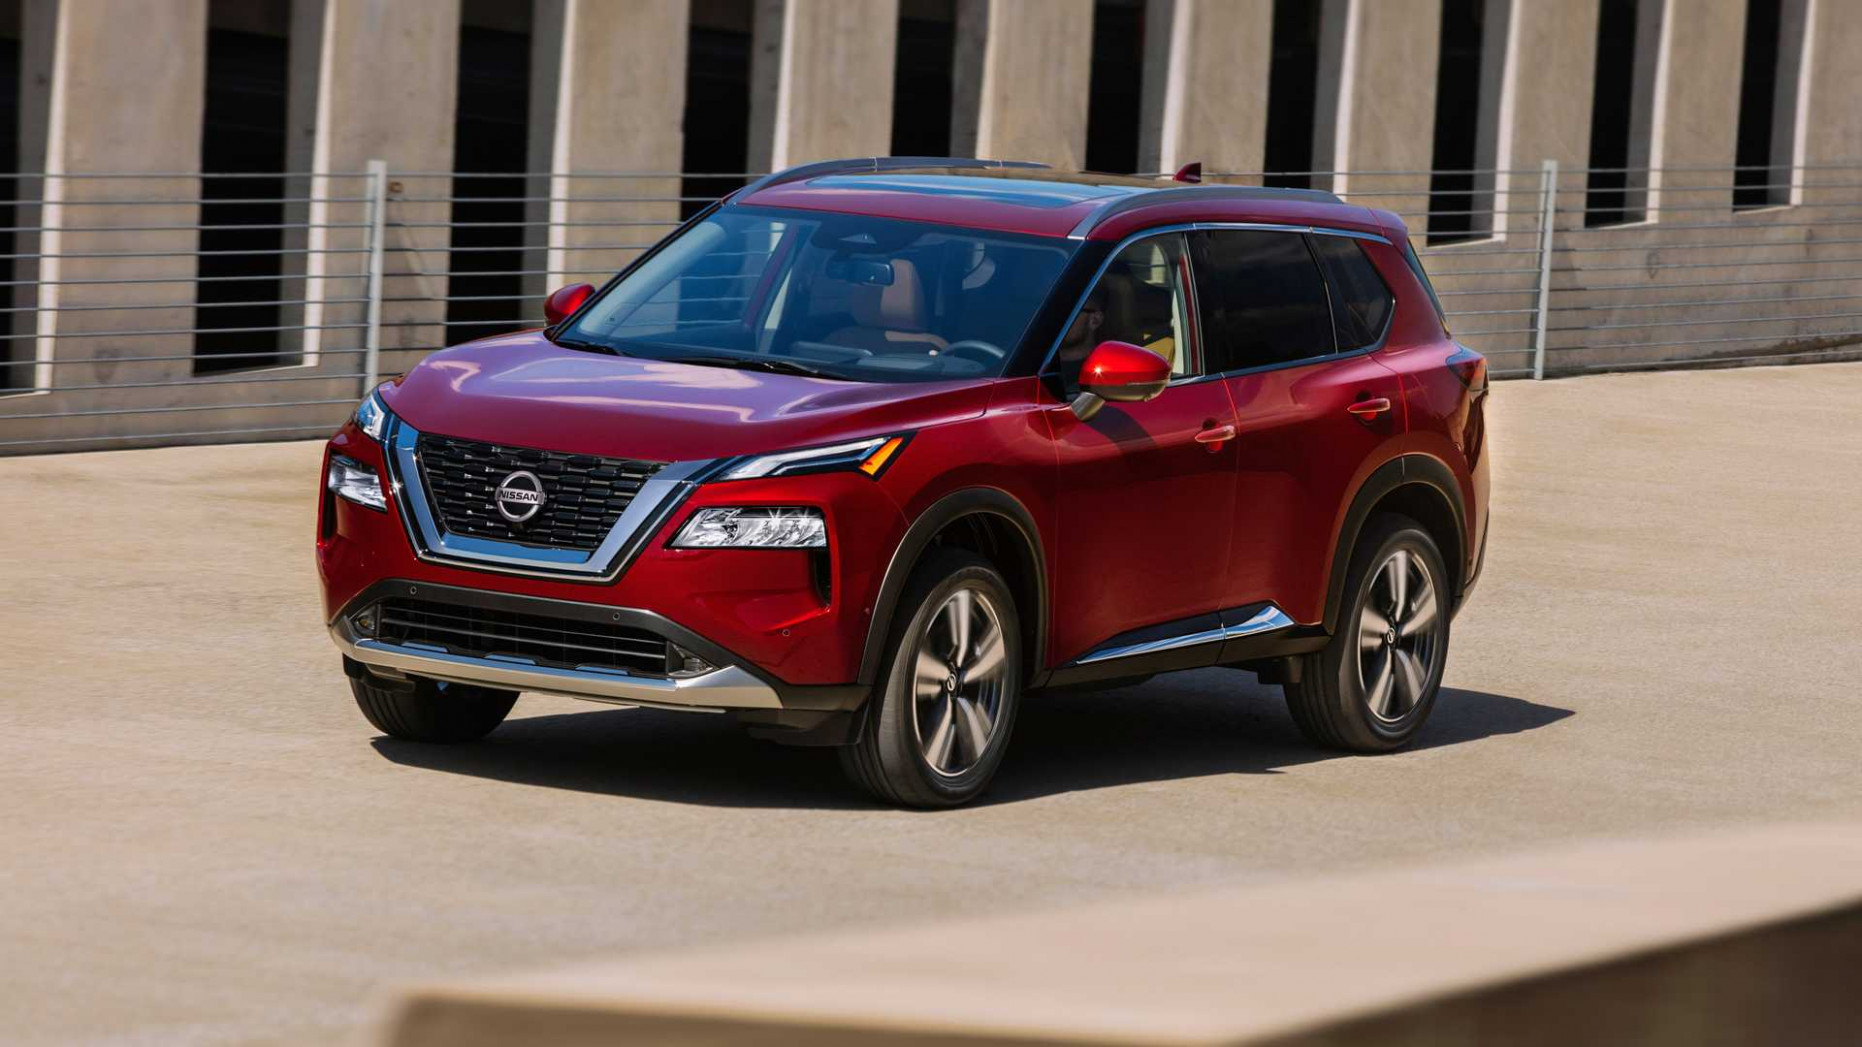 Pricing 2022 Nissan Rogue